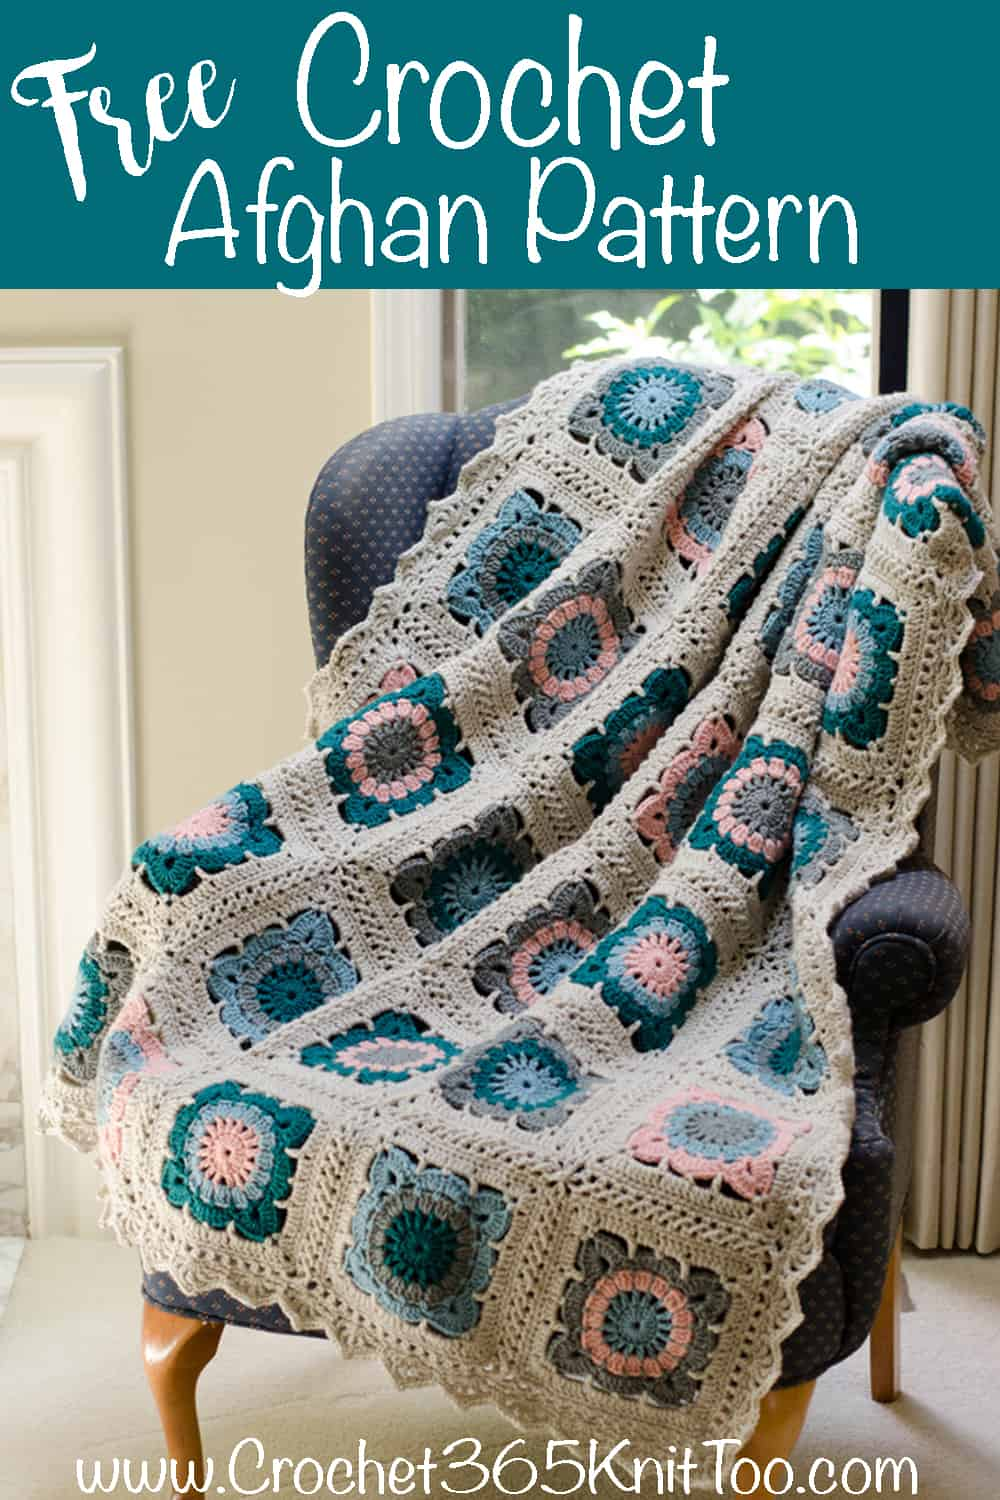 Crochet afghan in blue, teal, pink and gray.